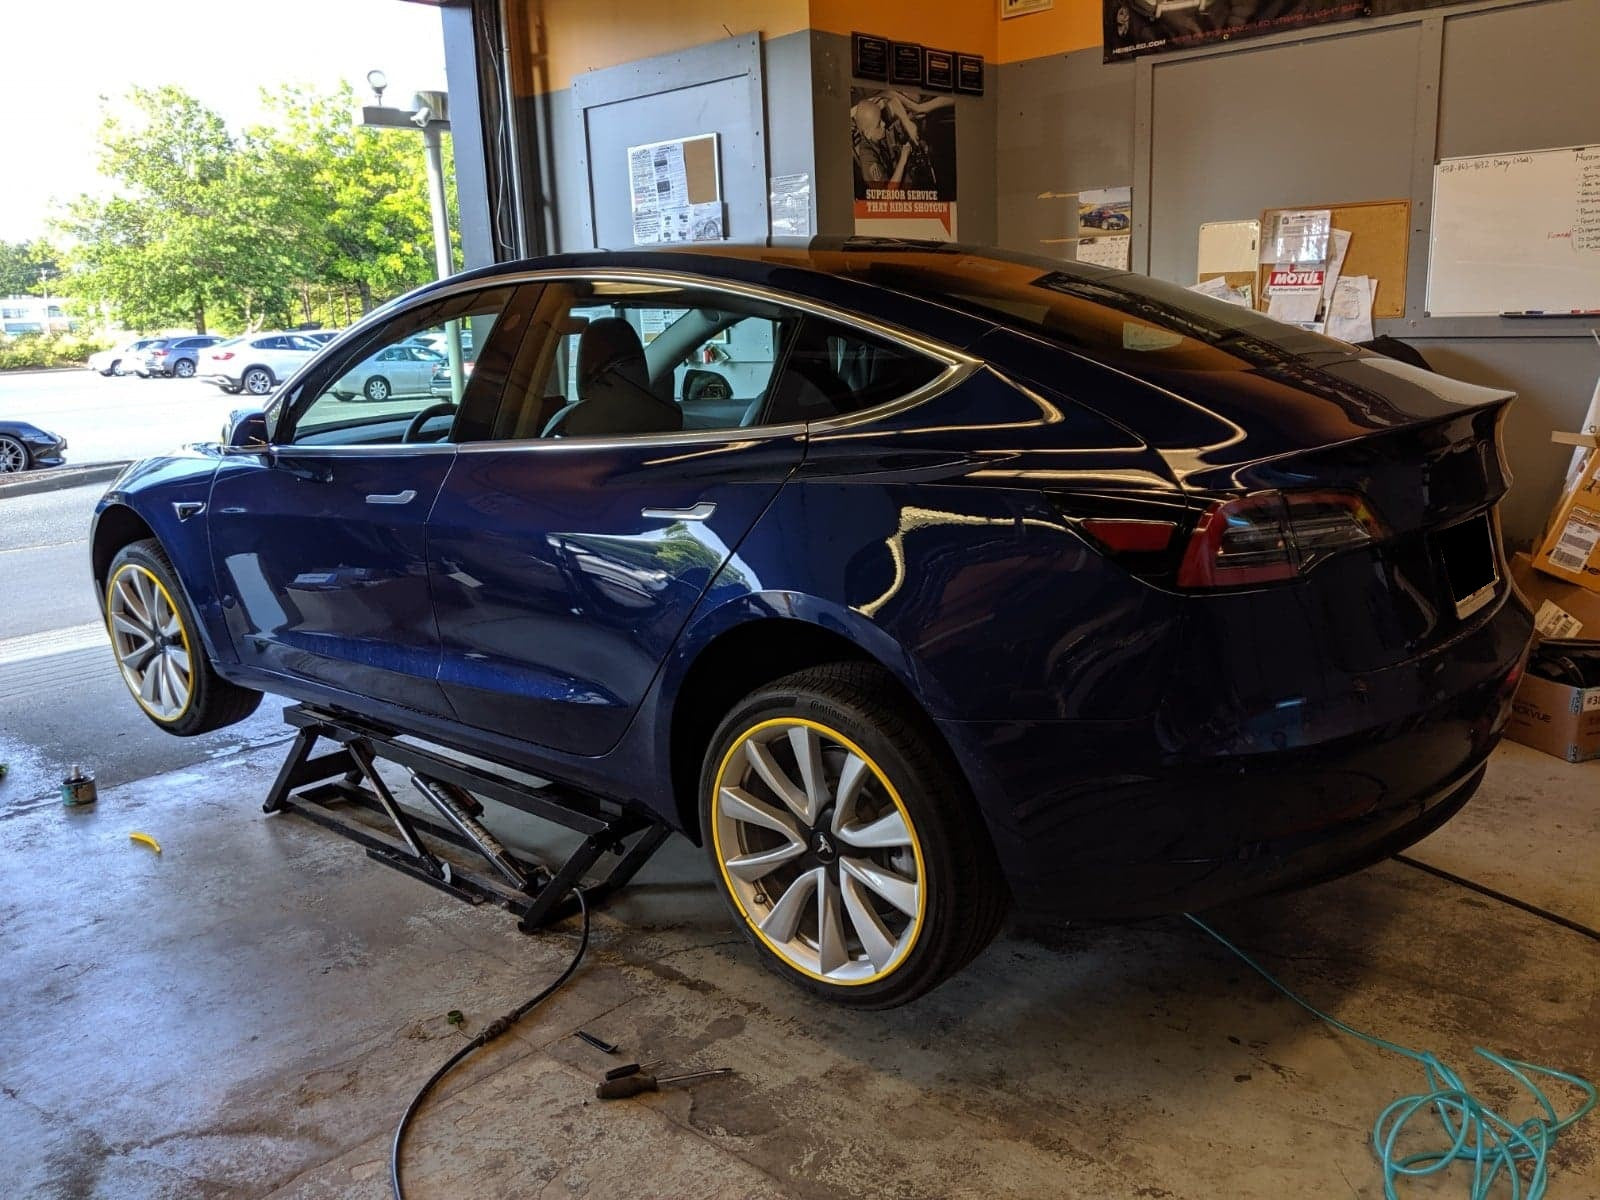 Tesla model 3 blue with yellow alloygator